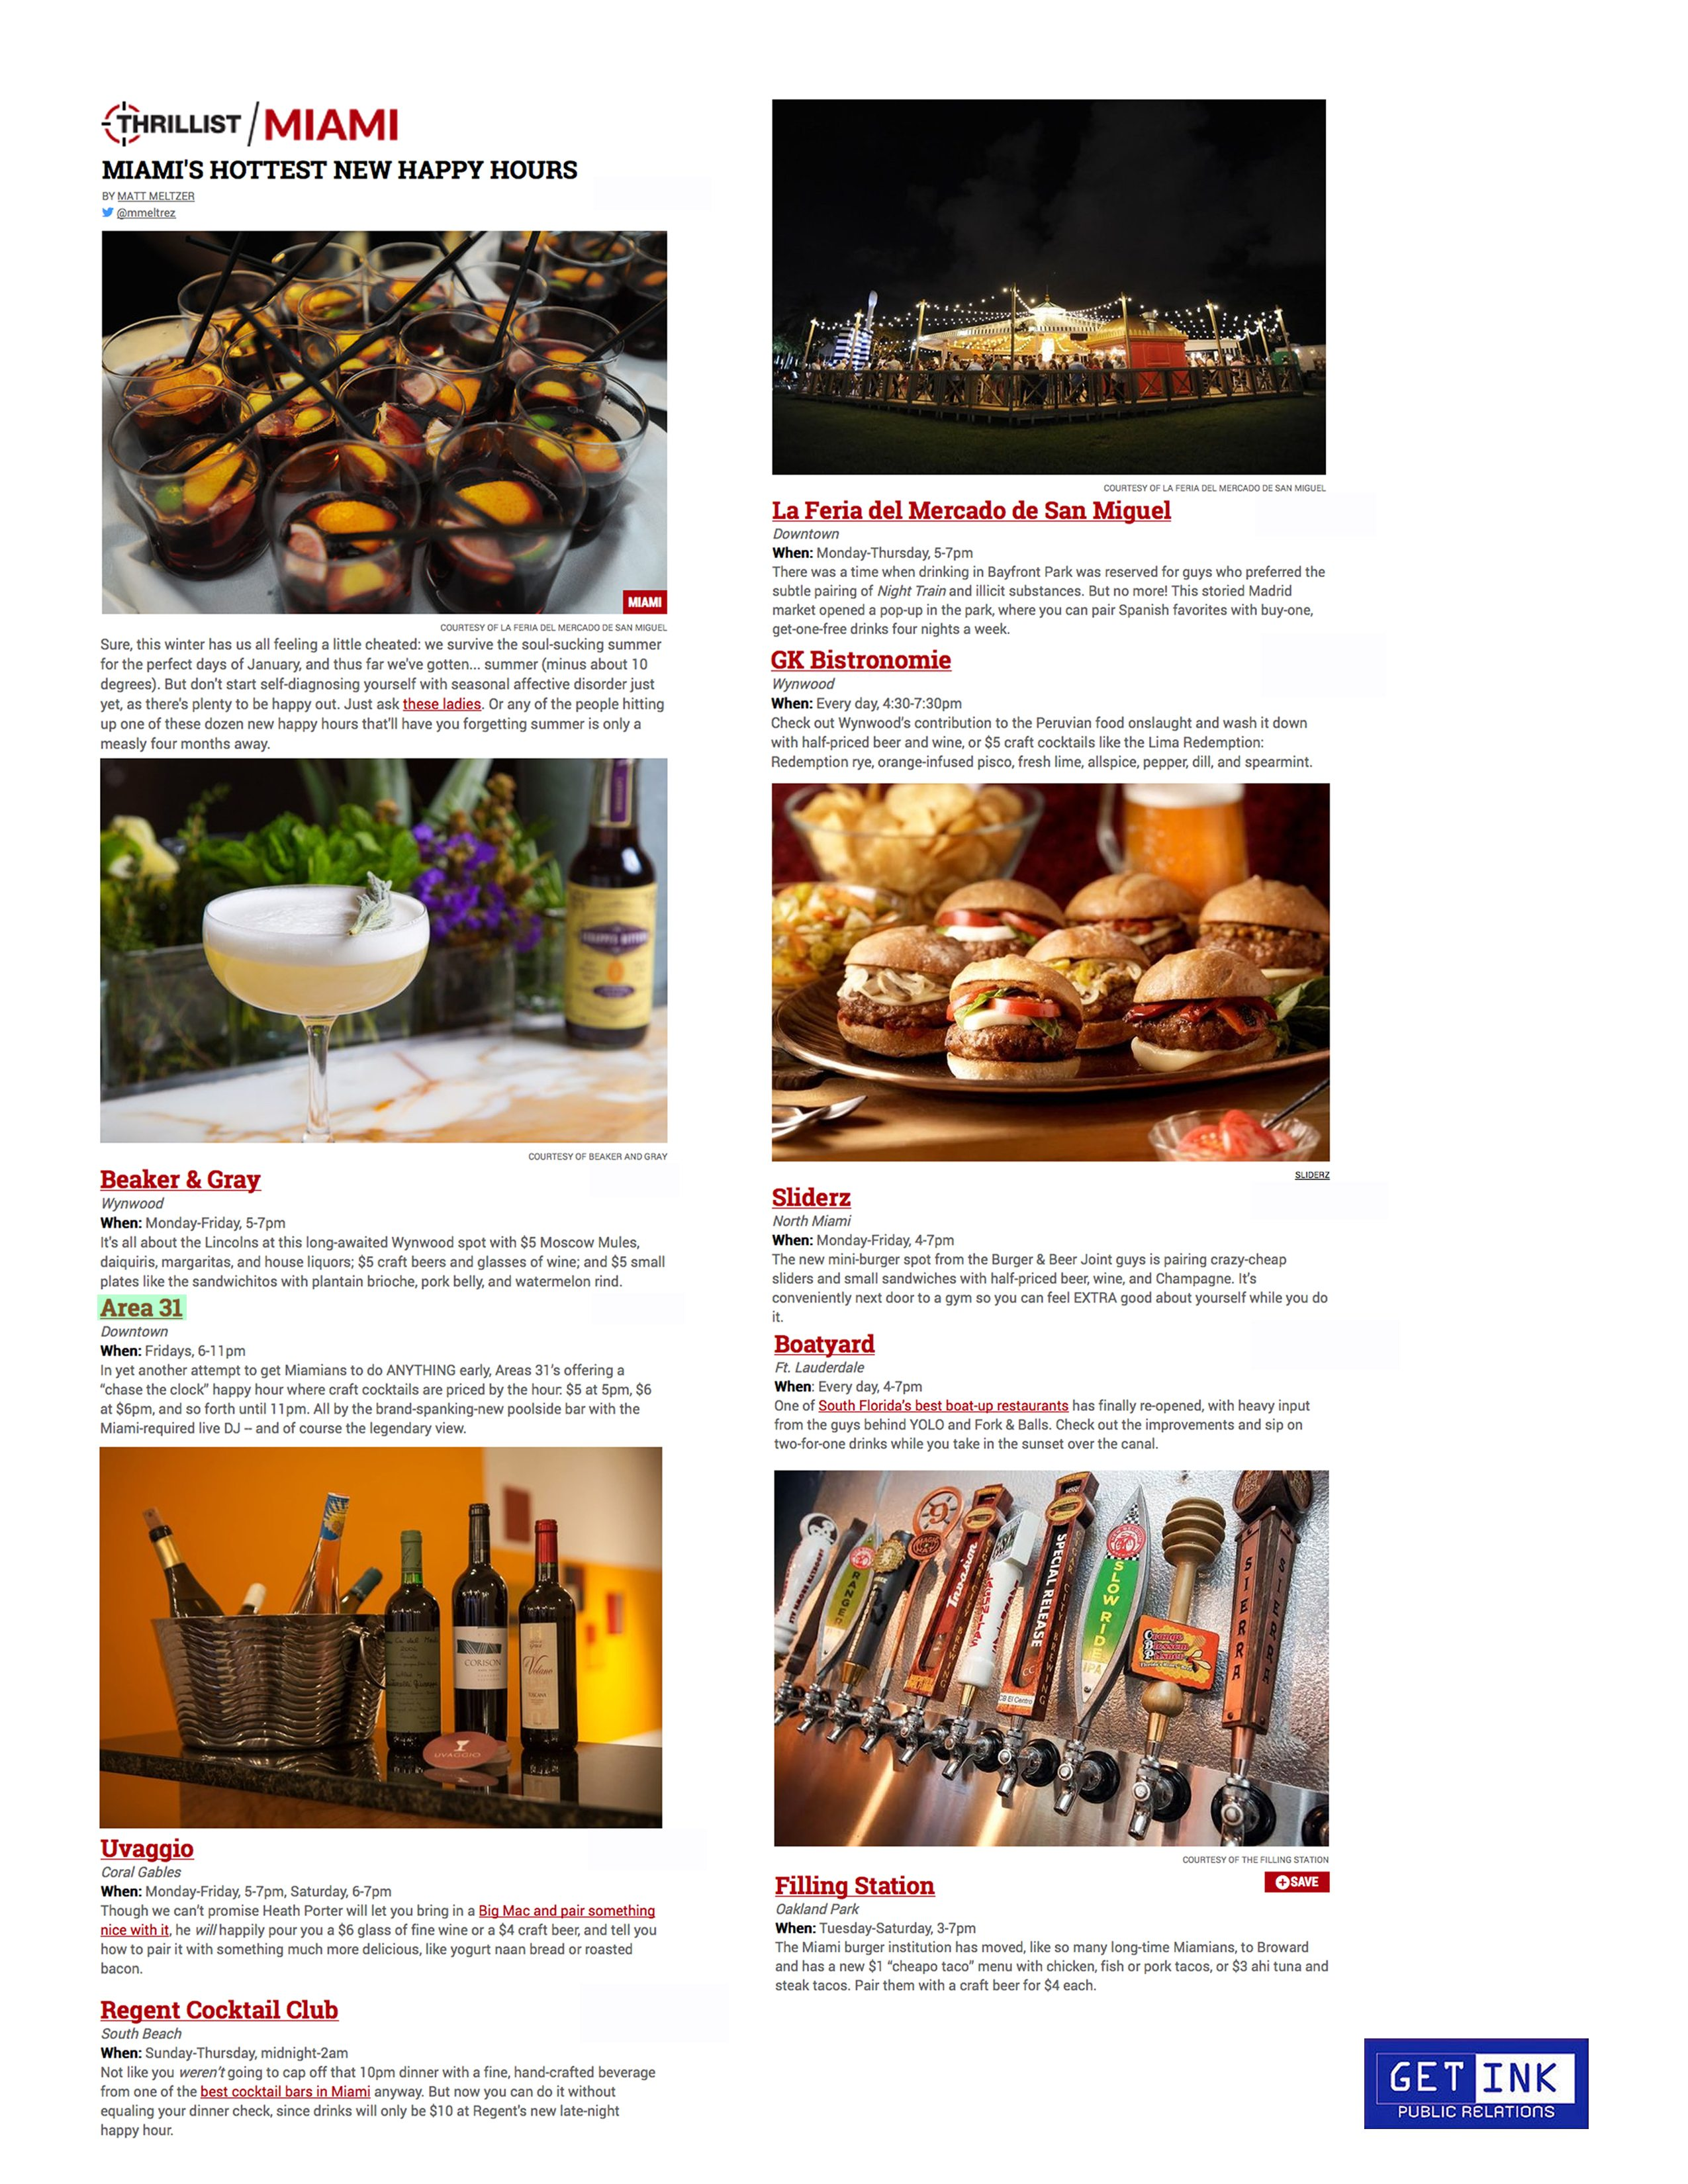 Thrillist.com 1.11.16 Part 1